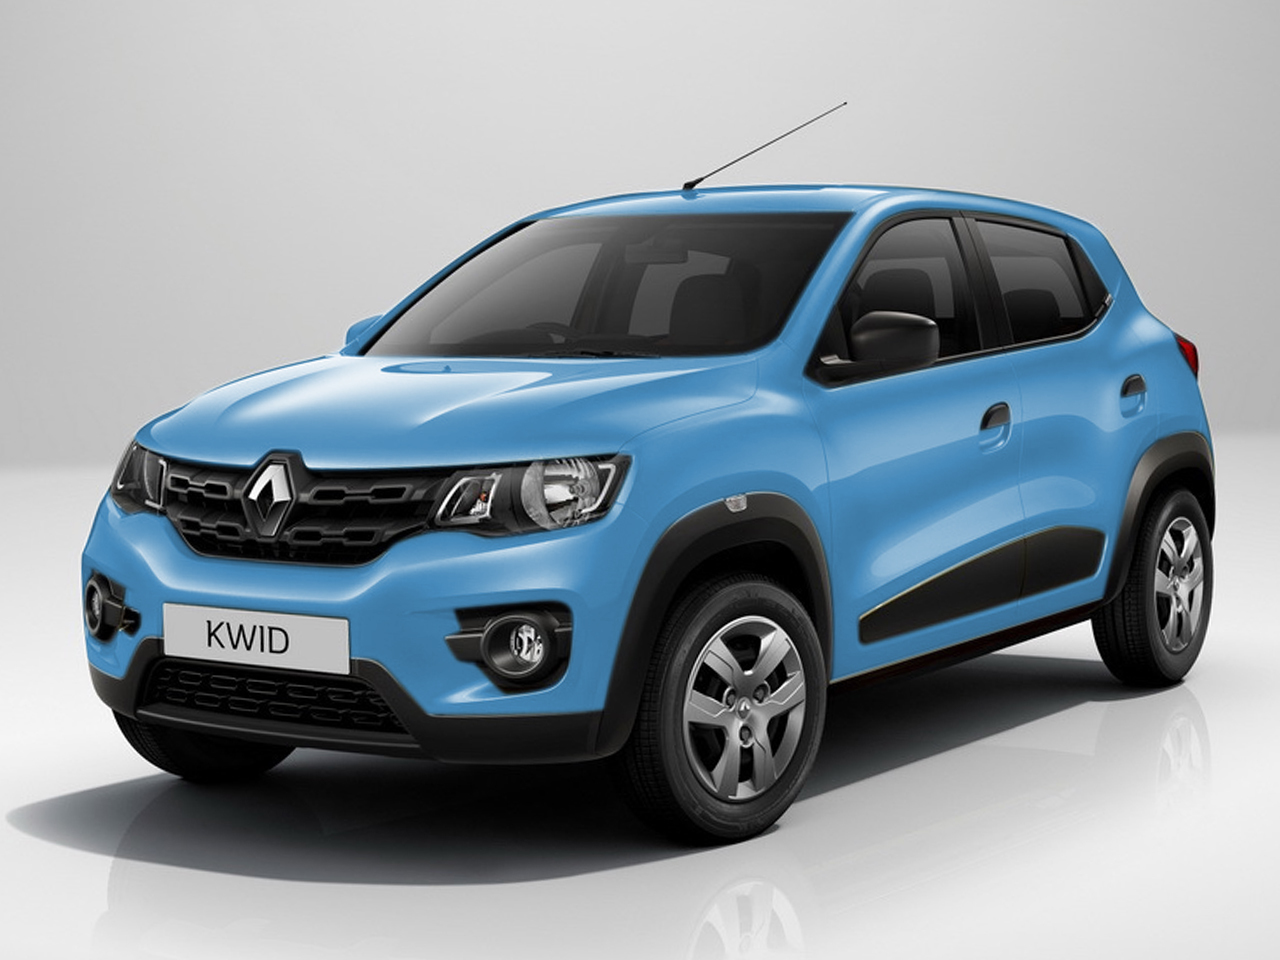 renault kwid la citadine 3 500 euros en inde photo 3 l 39 argus. Black Bedroom Furniture Sets. Home Design Ideas